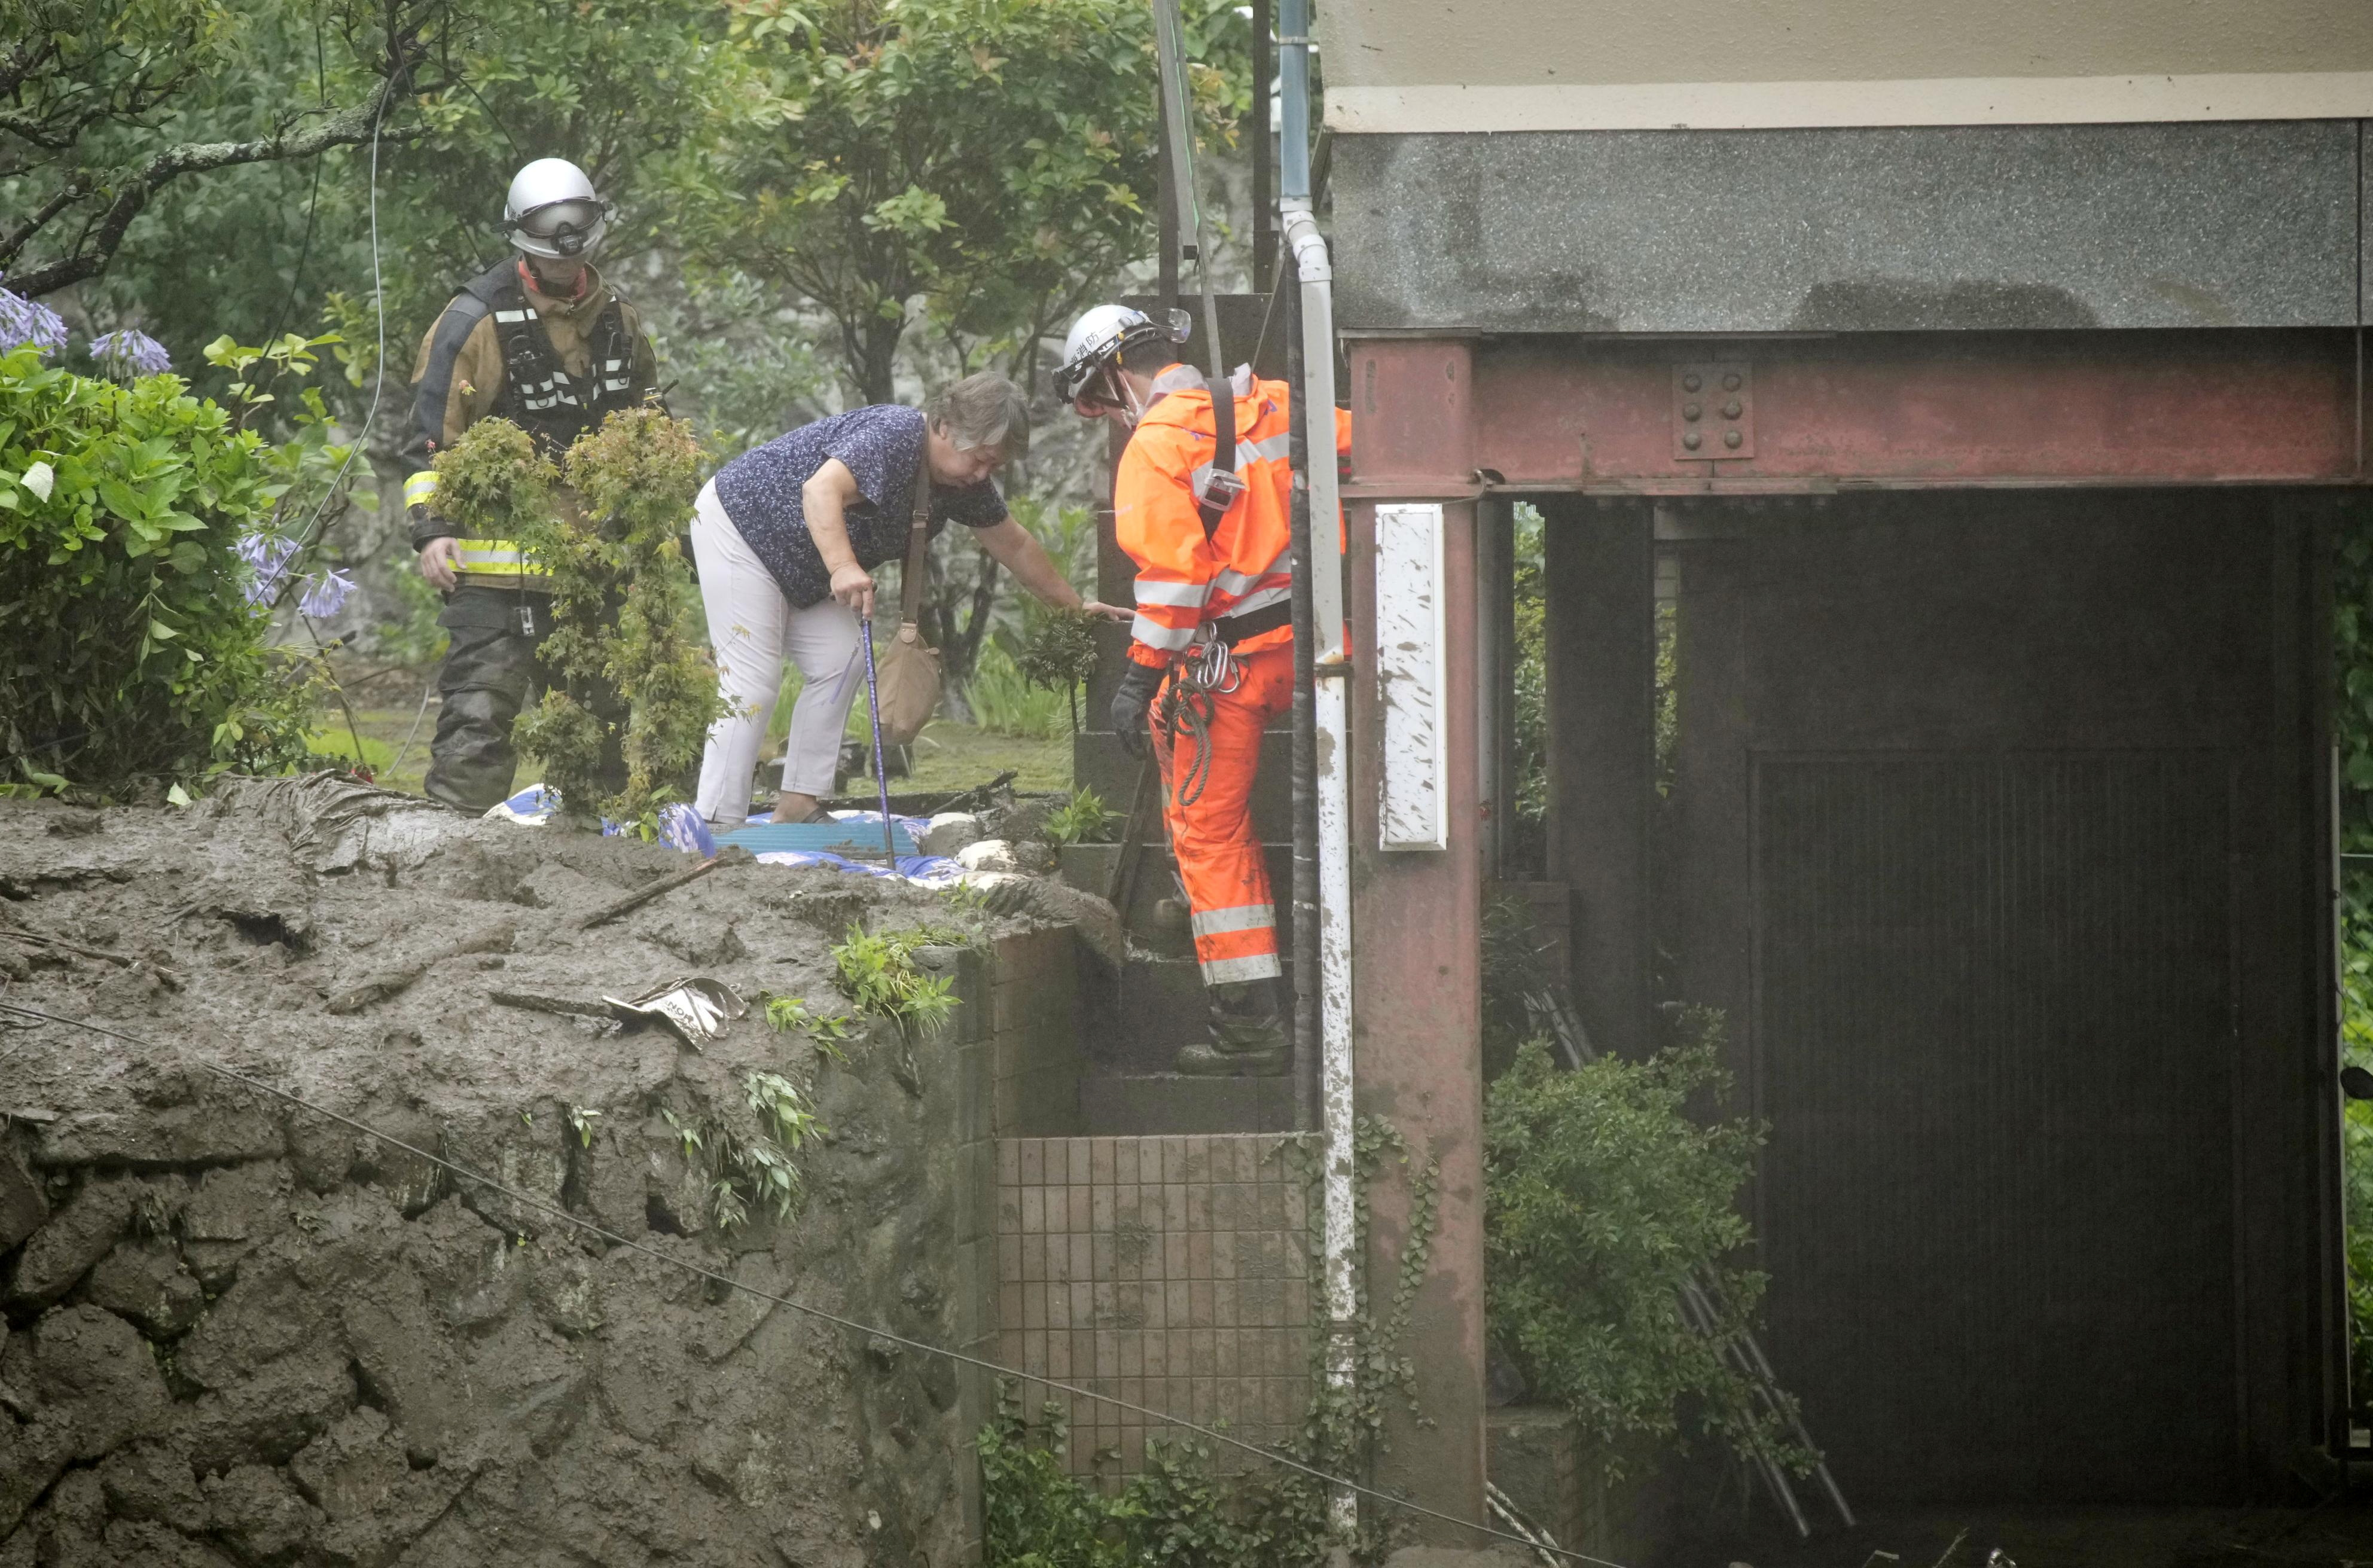 Rescue workers help a resident evacuate from a mudslide site following heavy rain at Izusan district in Atami, Japan July 3, 2021. Kyodo/via REUTERS